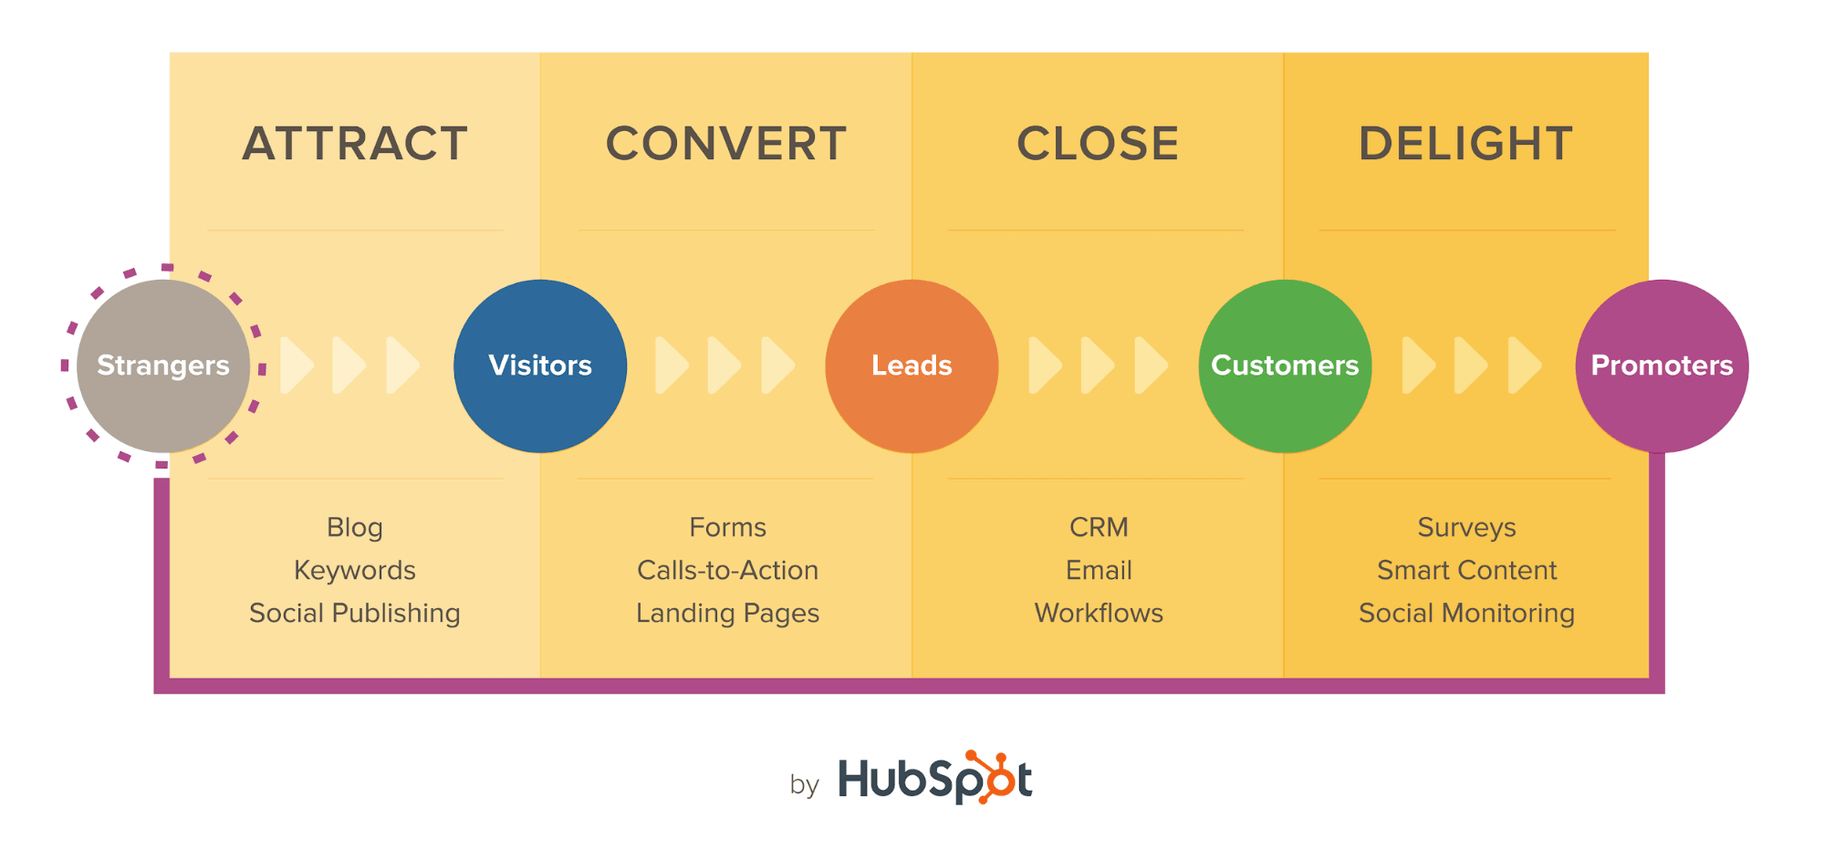 Hubspot's Inbound Marketing Process